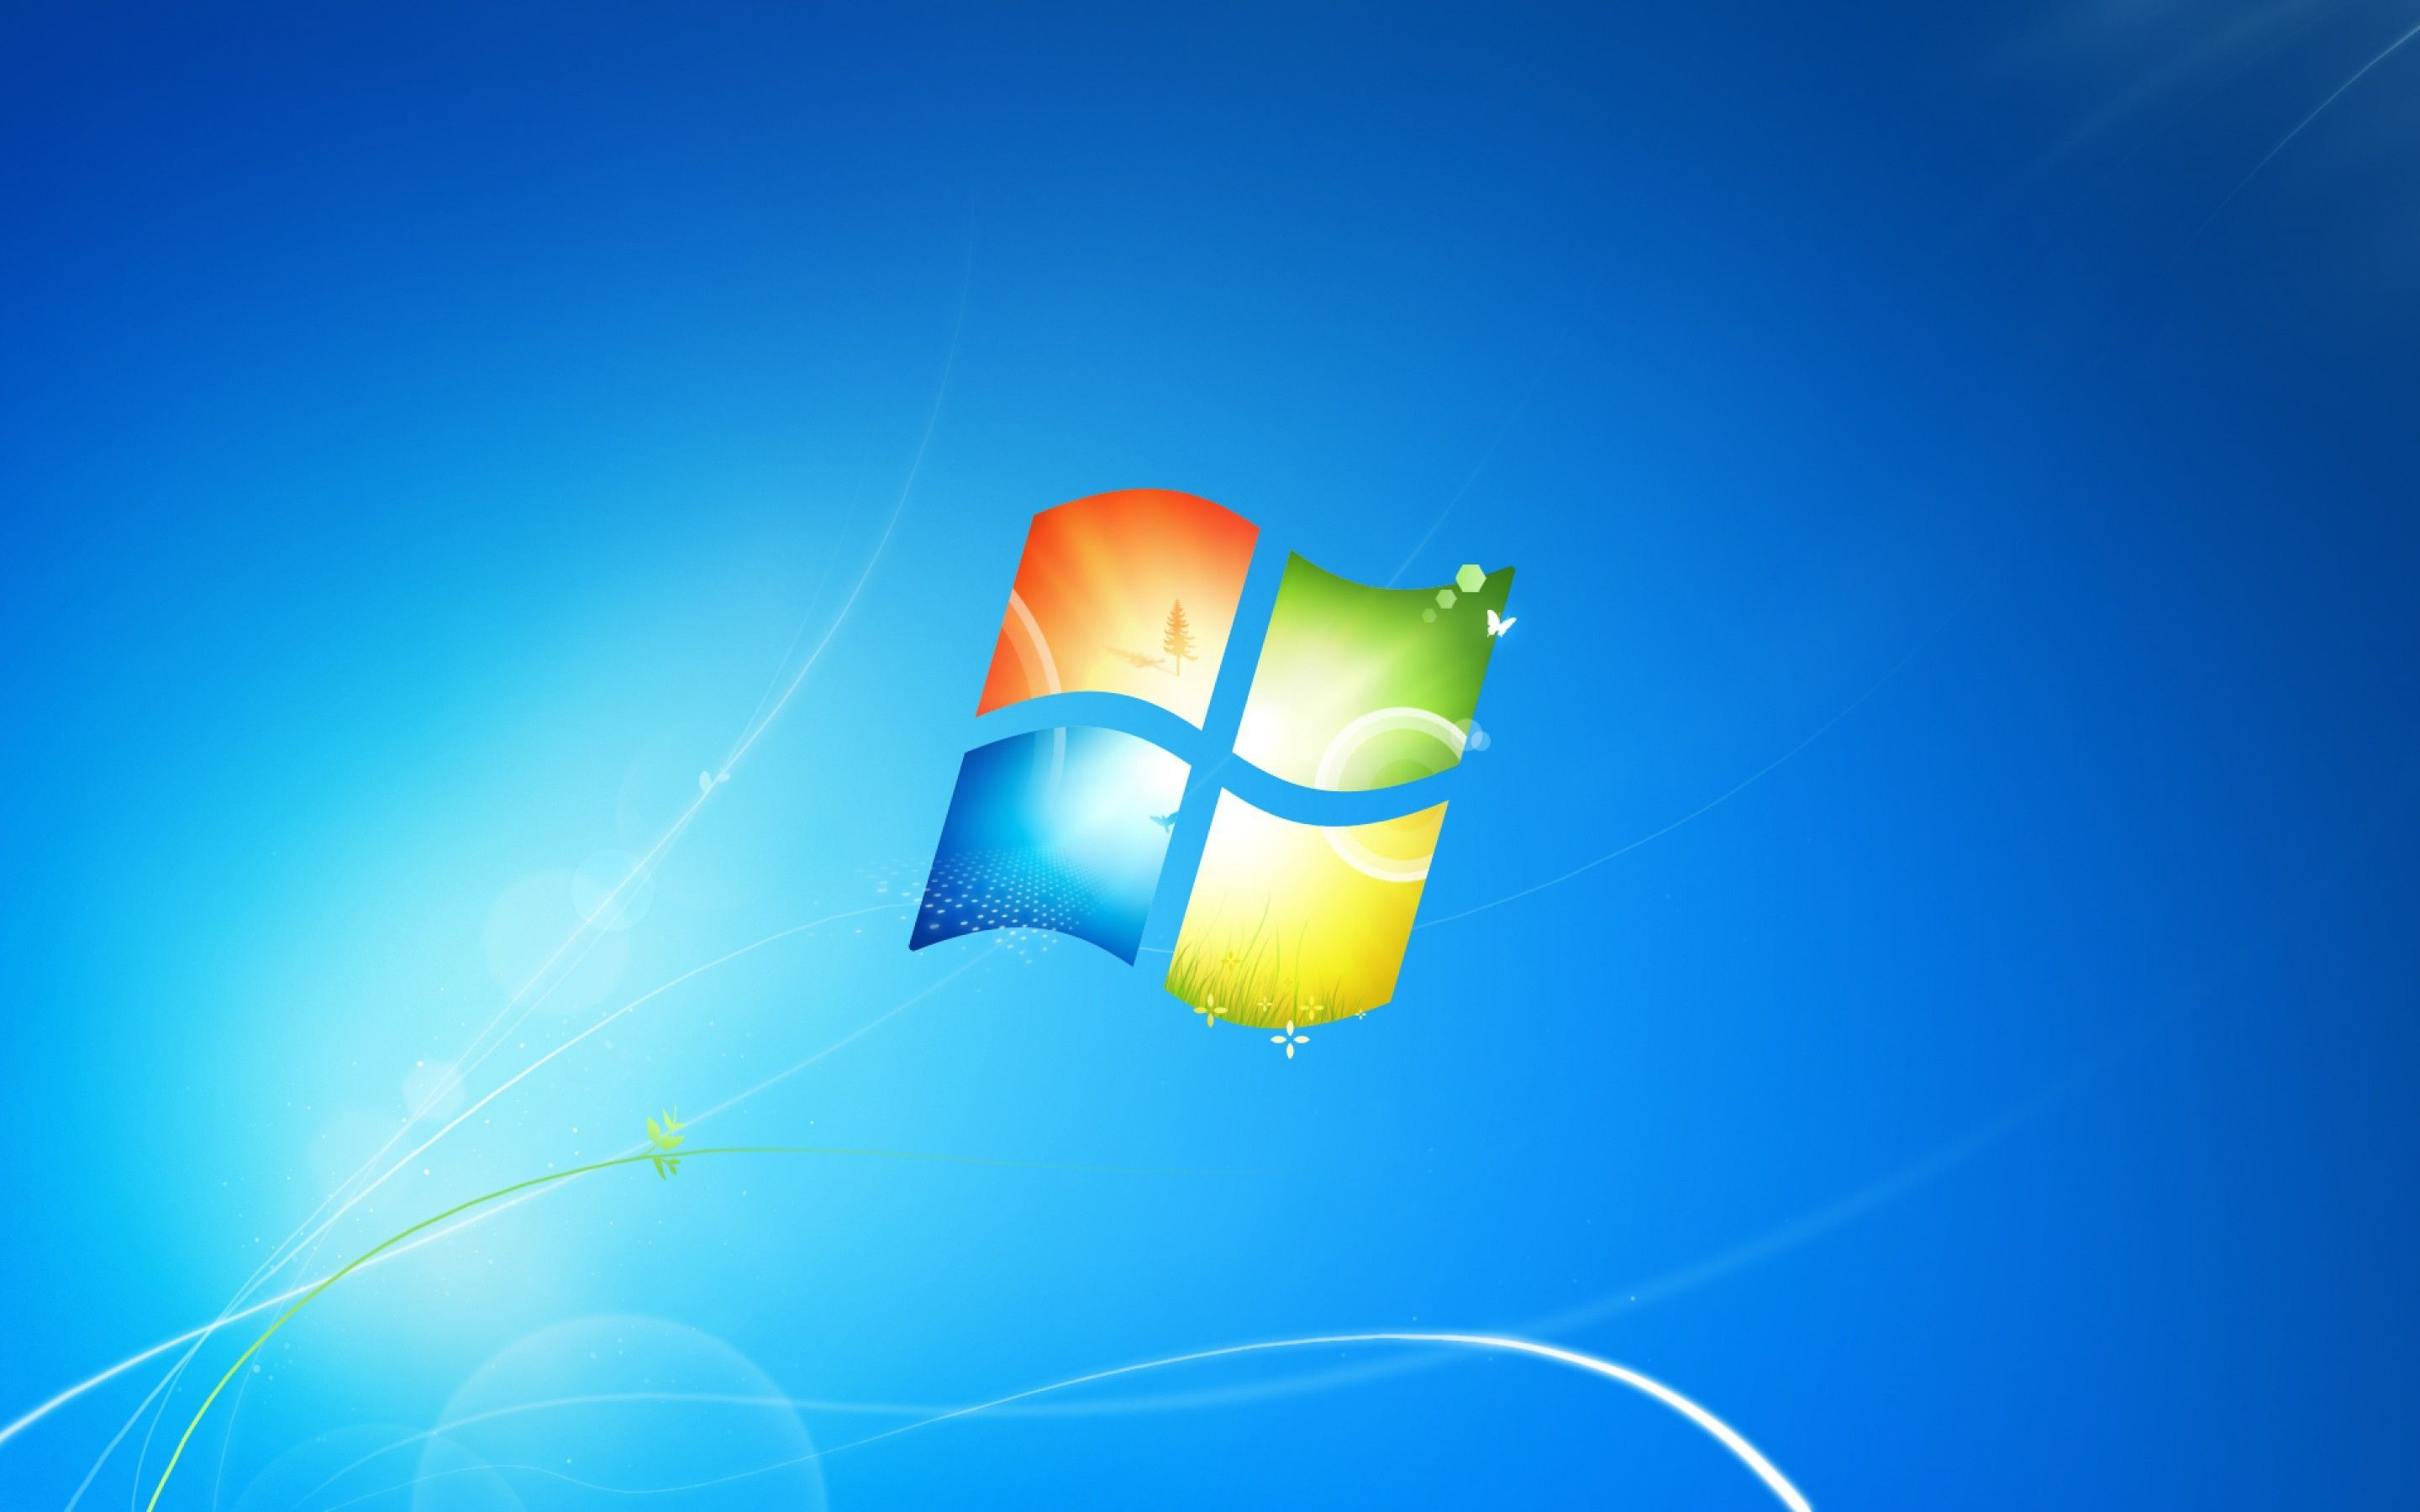 Microsoft Wallpapers HD Desktop Backgrounds Images and Pictures